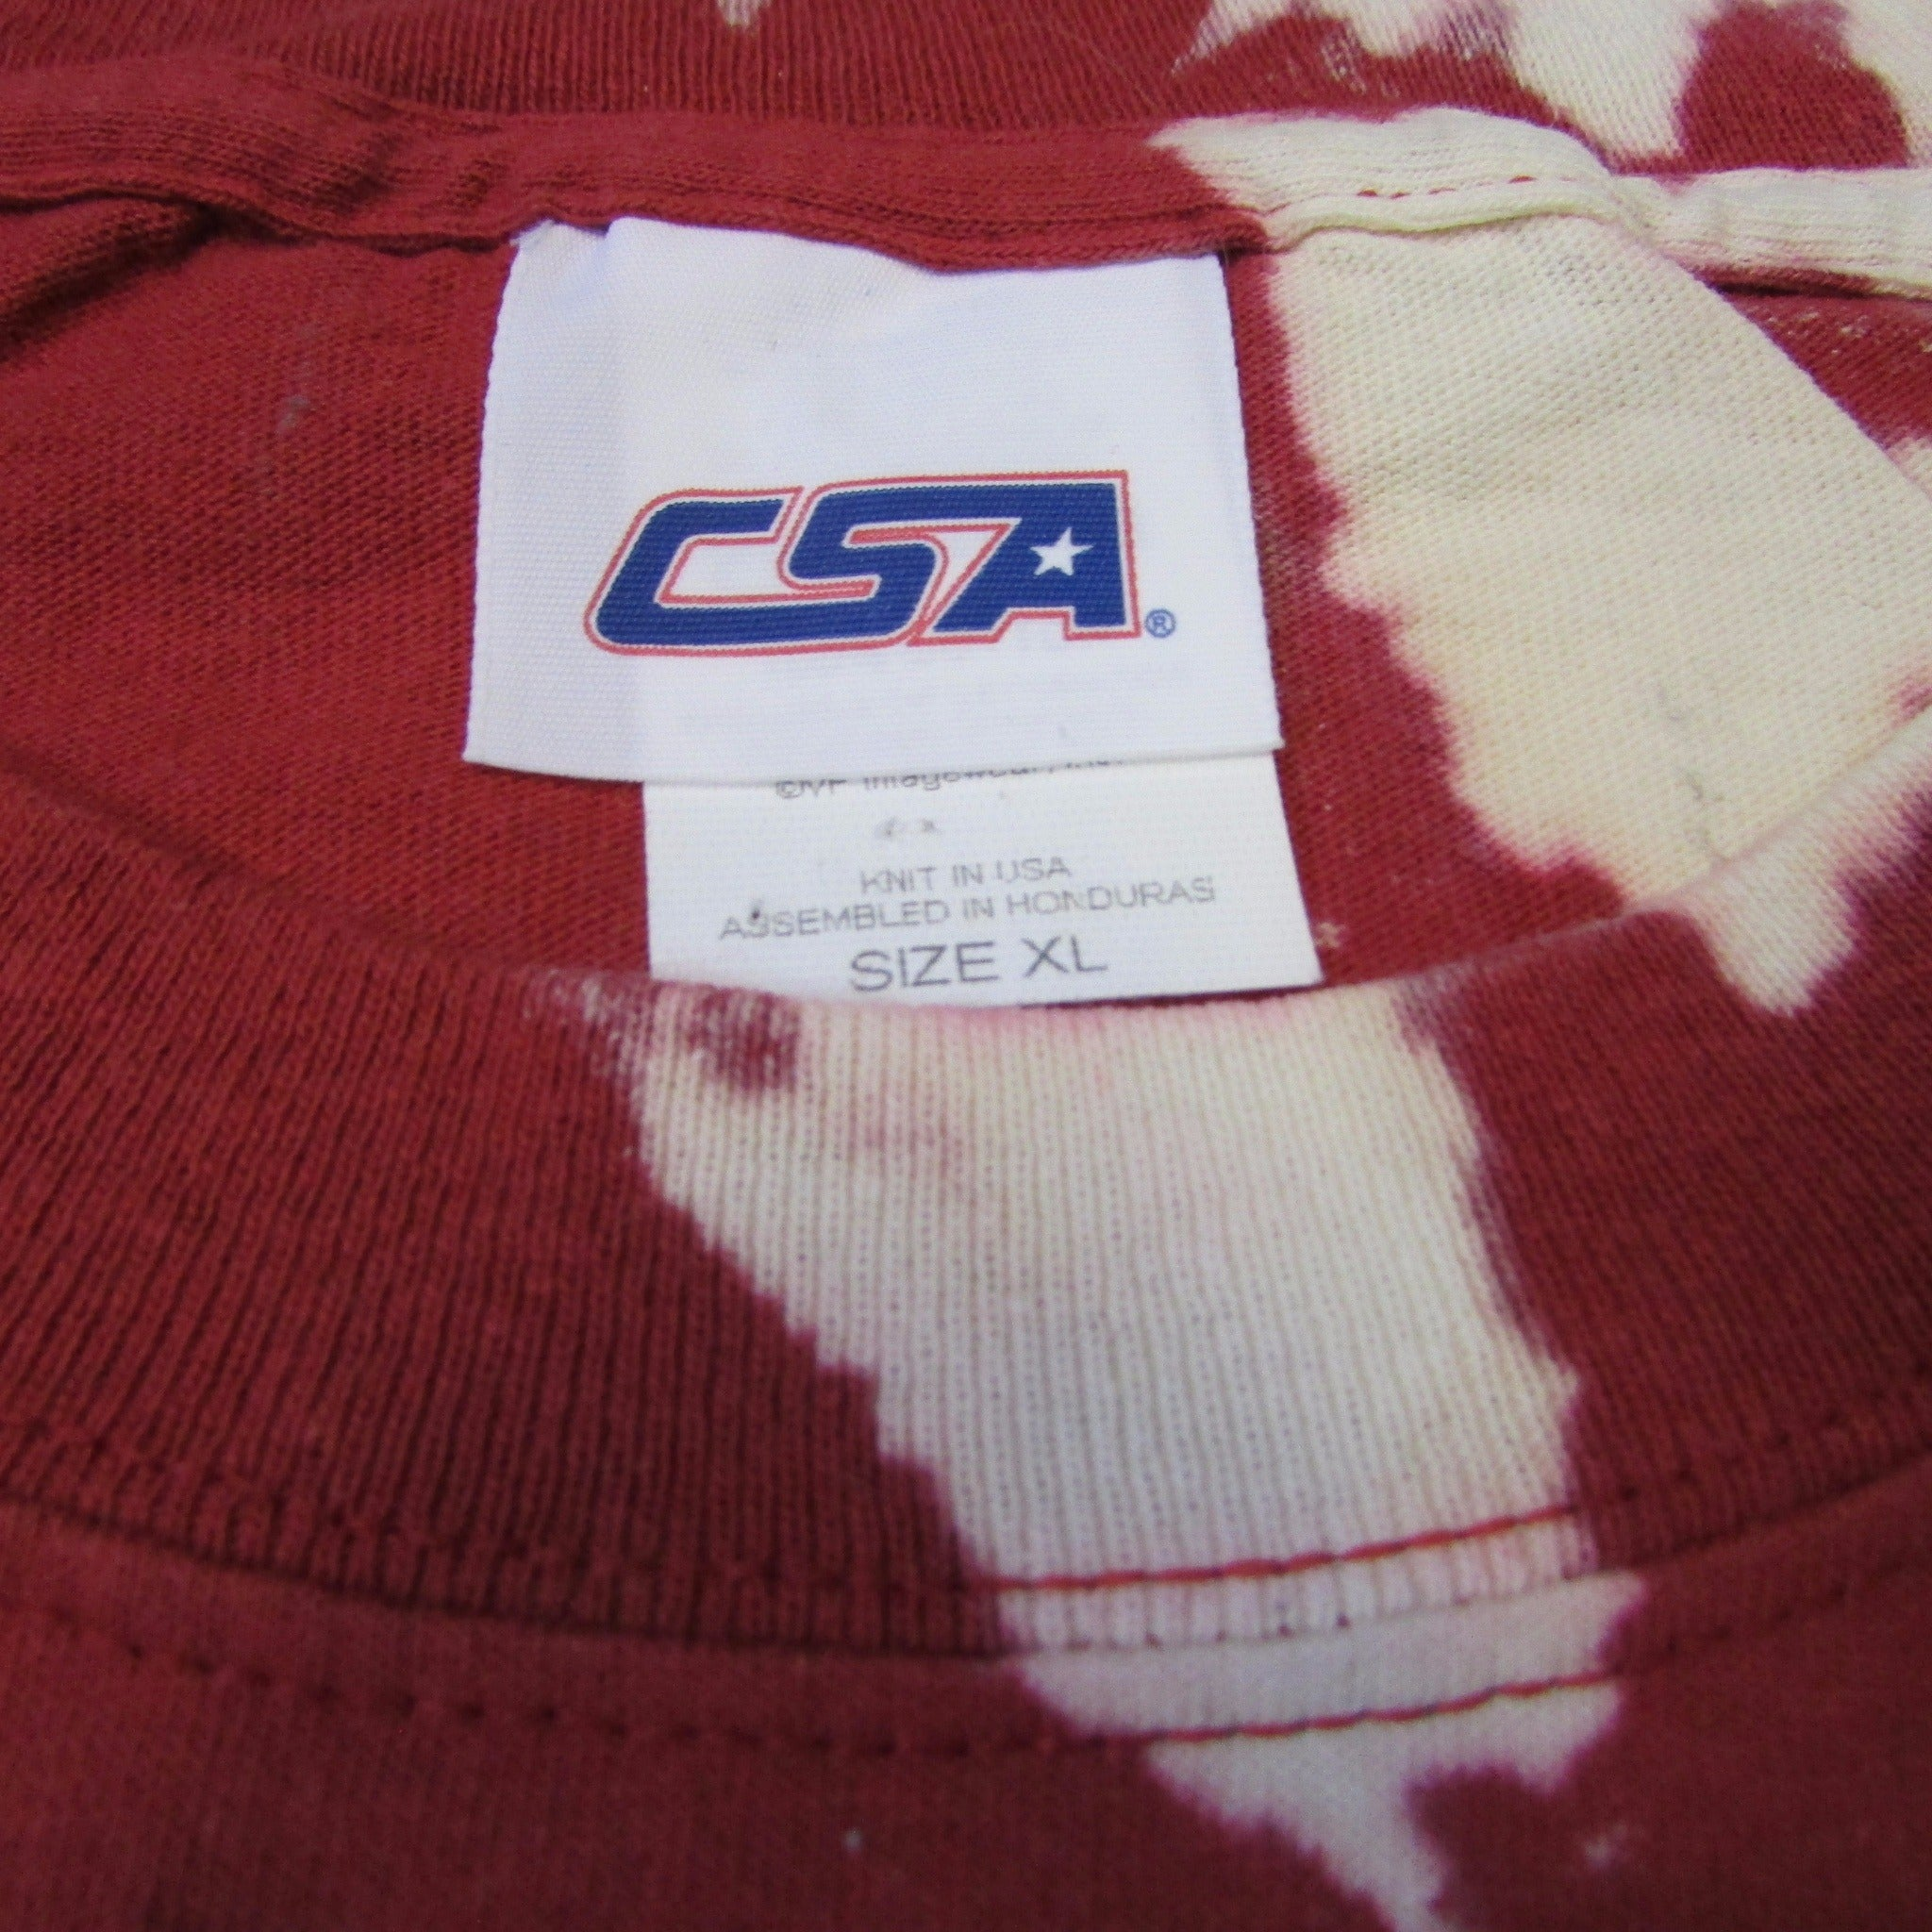 USC Rose Bowl Football Game 2008 Tie Dye Bleach T-Shirt CSA Sz XL